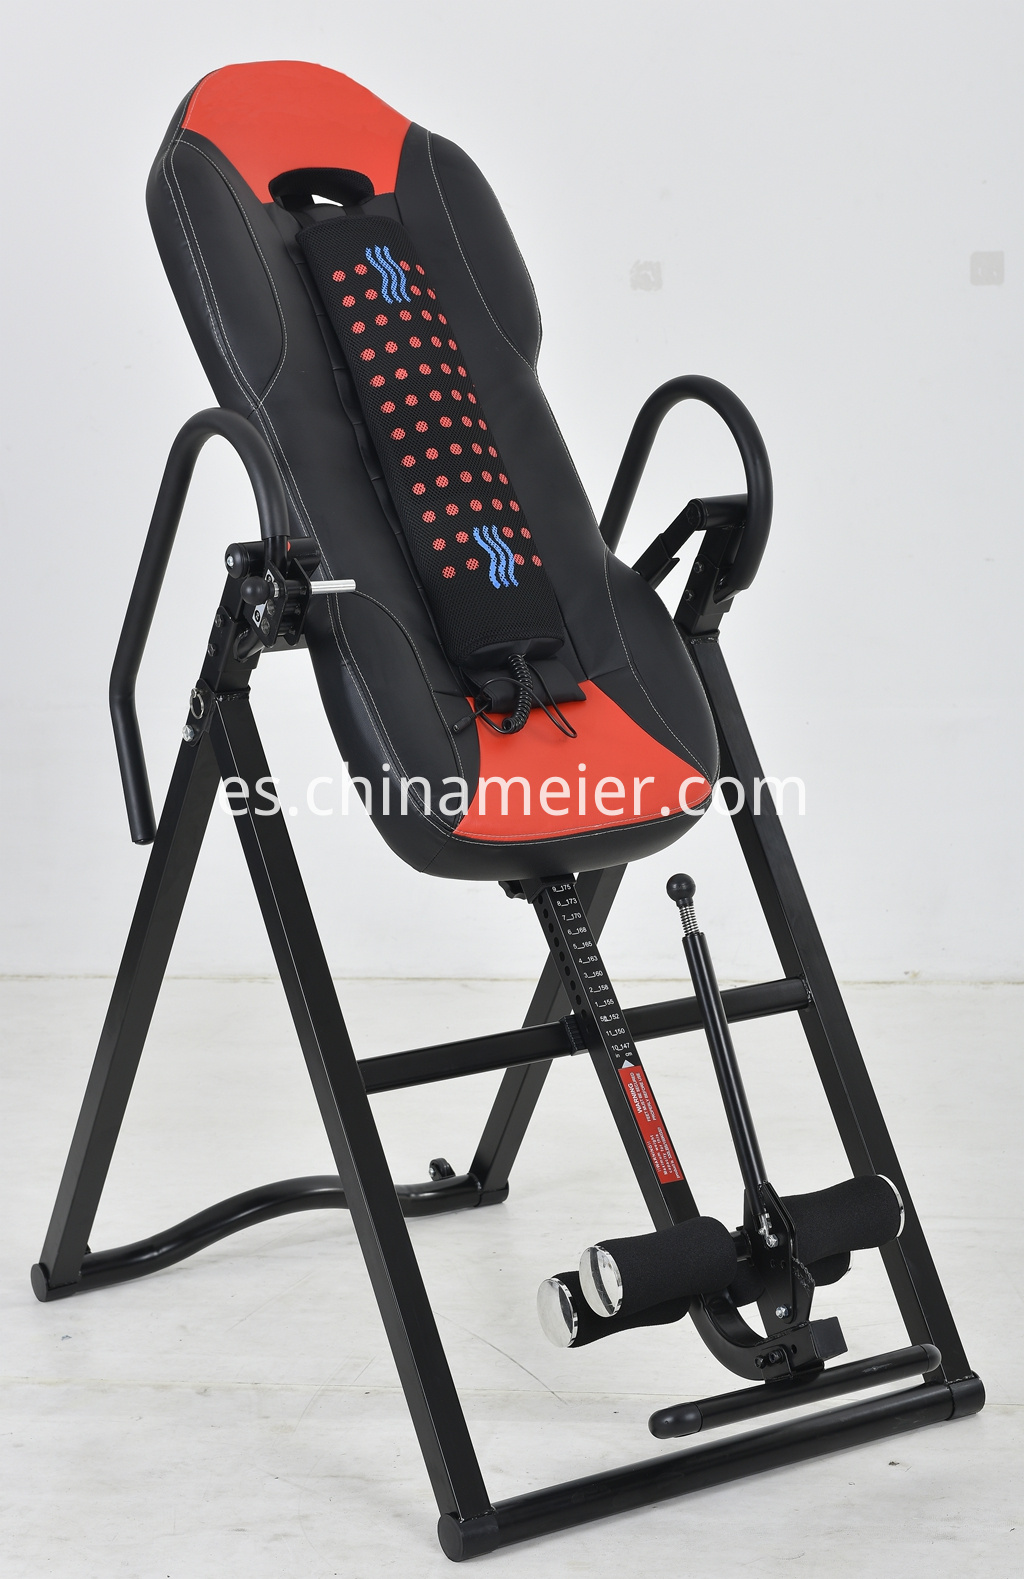 Deluxe inversion table